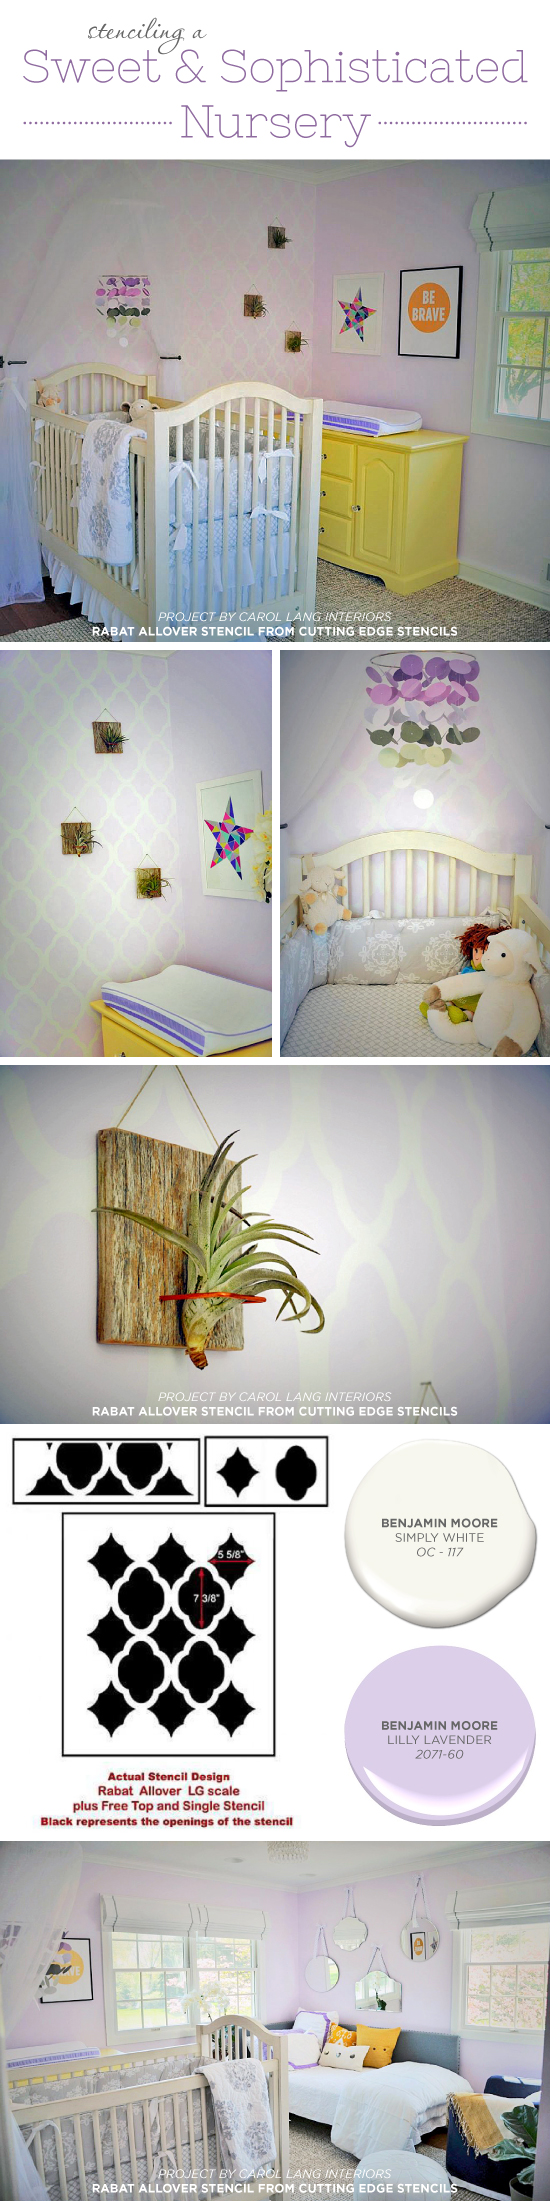 Cutting Edge Stencils shares a DIY stenciled nursery accent wall using the Rabat Allover, a popular Moroccan wall pattern. http://www.cuttingedgestencils.com/moroccan-stencil-pattern-3.html